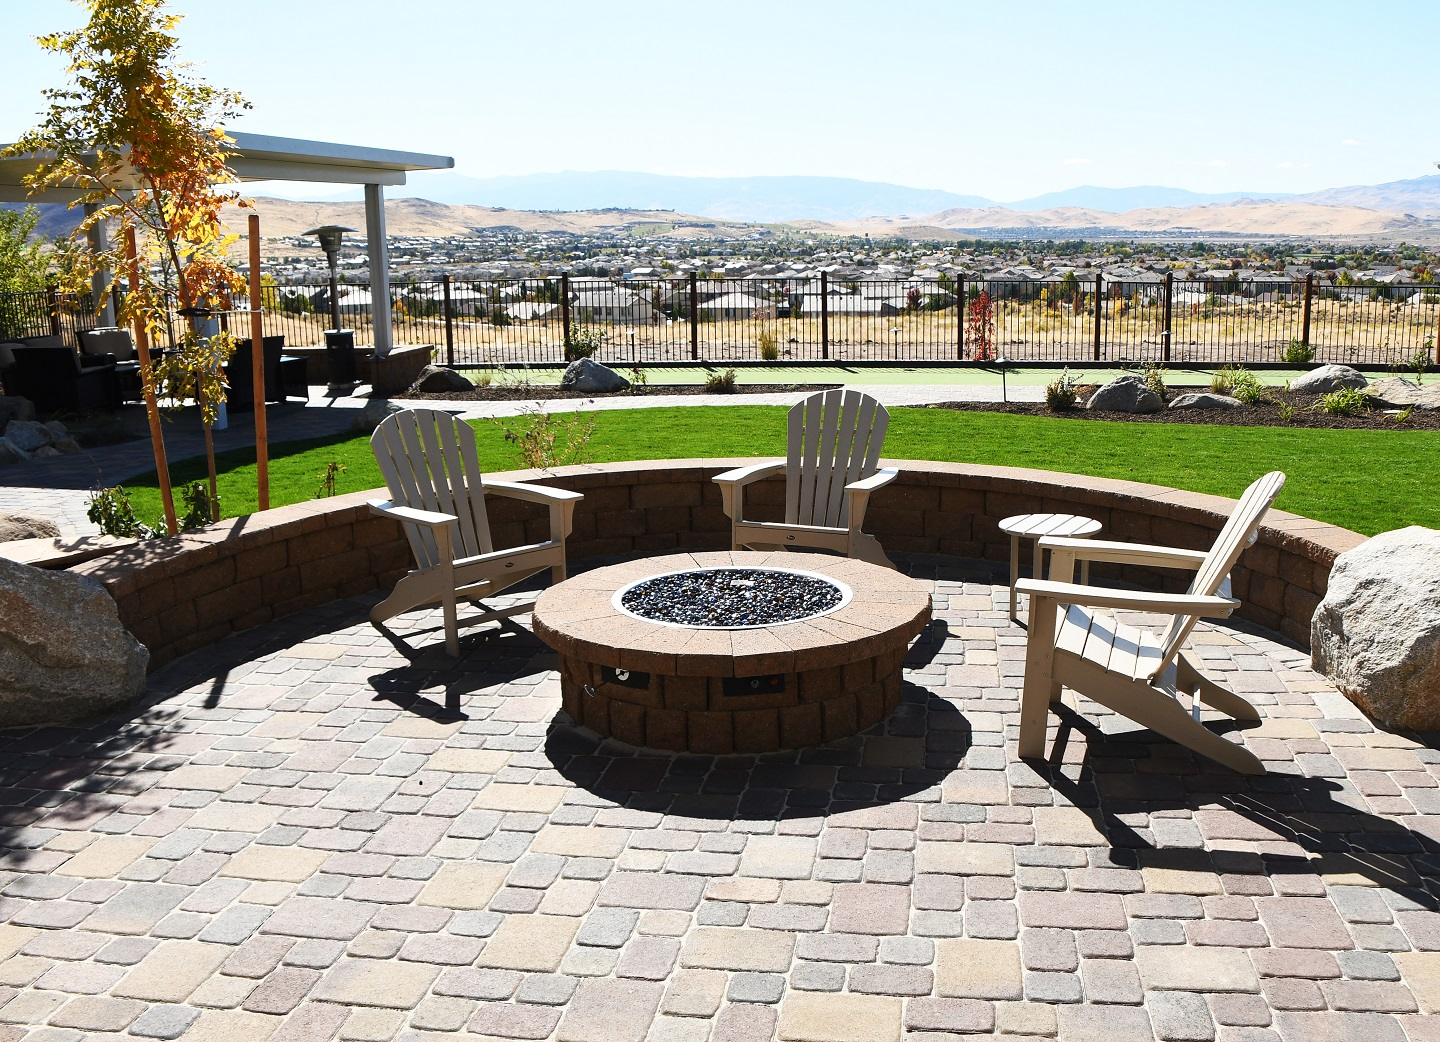 Outdoor fireplace with pergola in Reno, NV